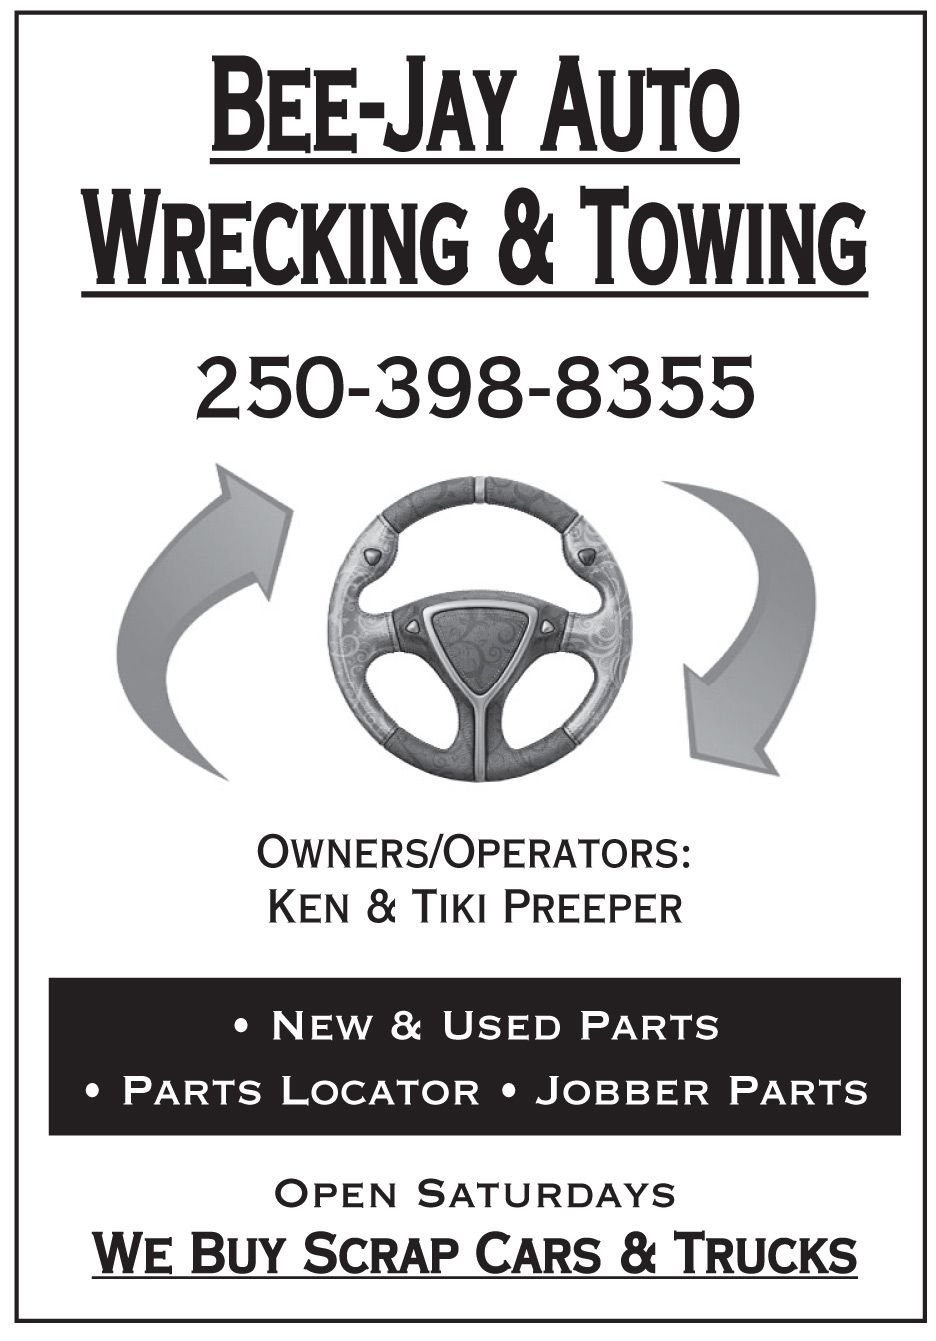 Click to visit the Bee Jay Autowrecking And Towing Facebook page.